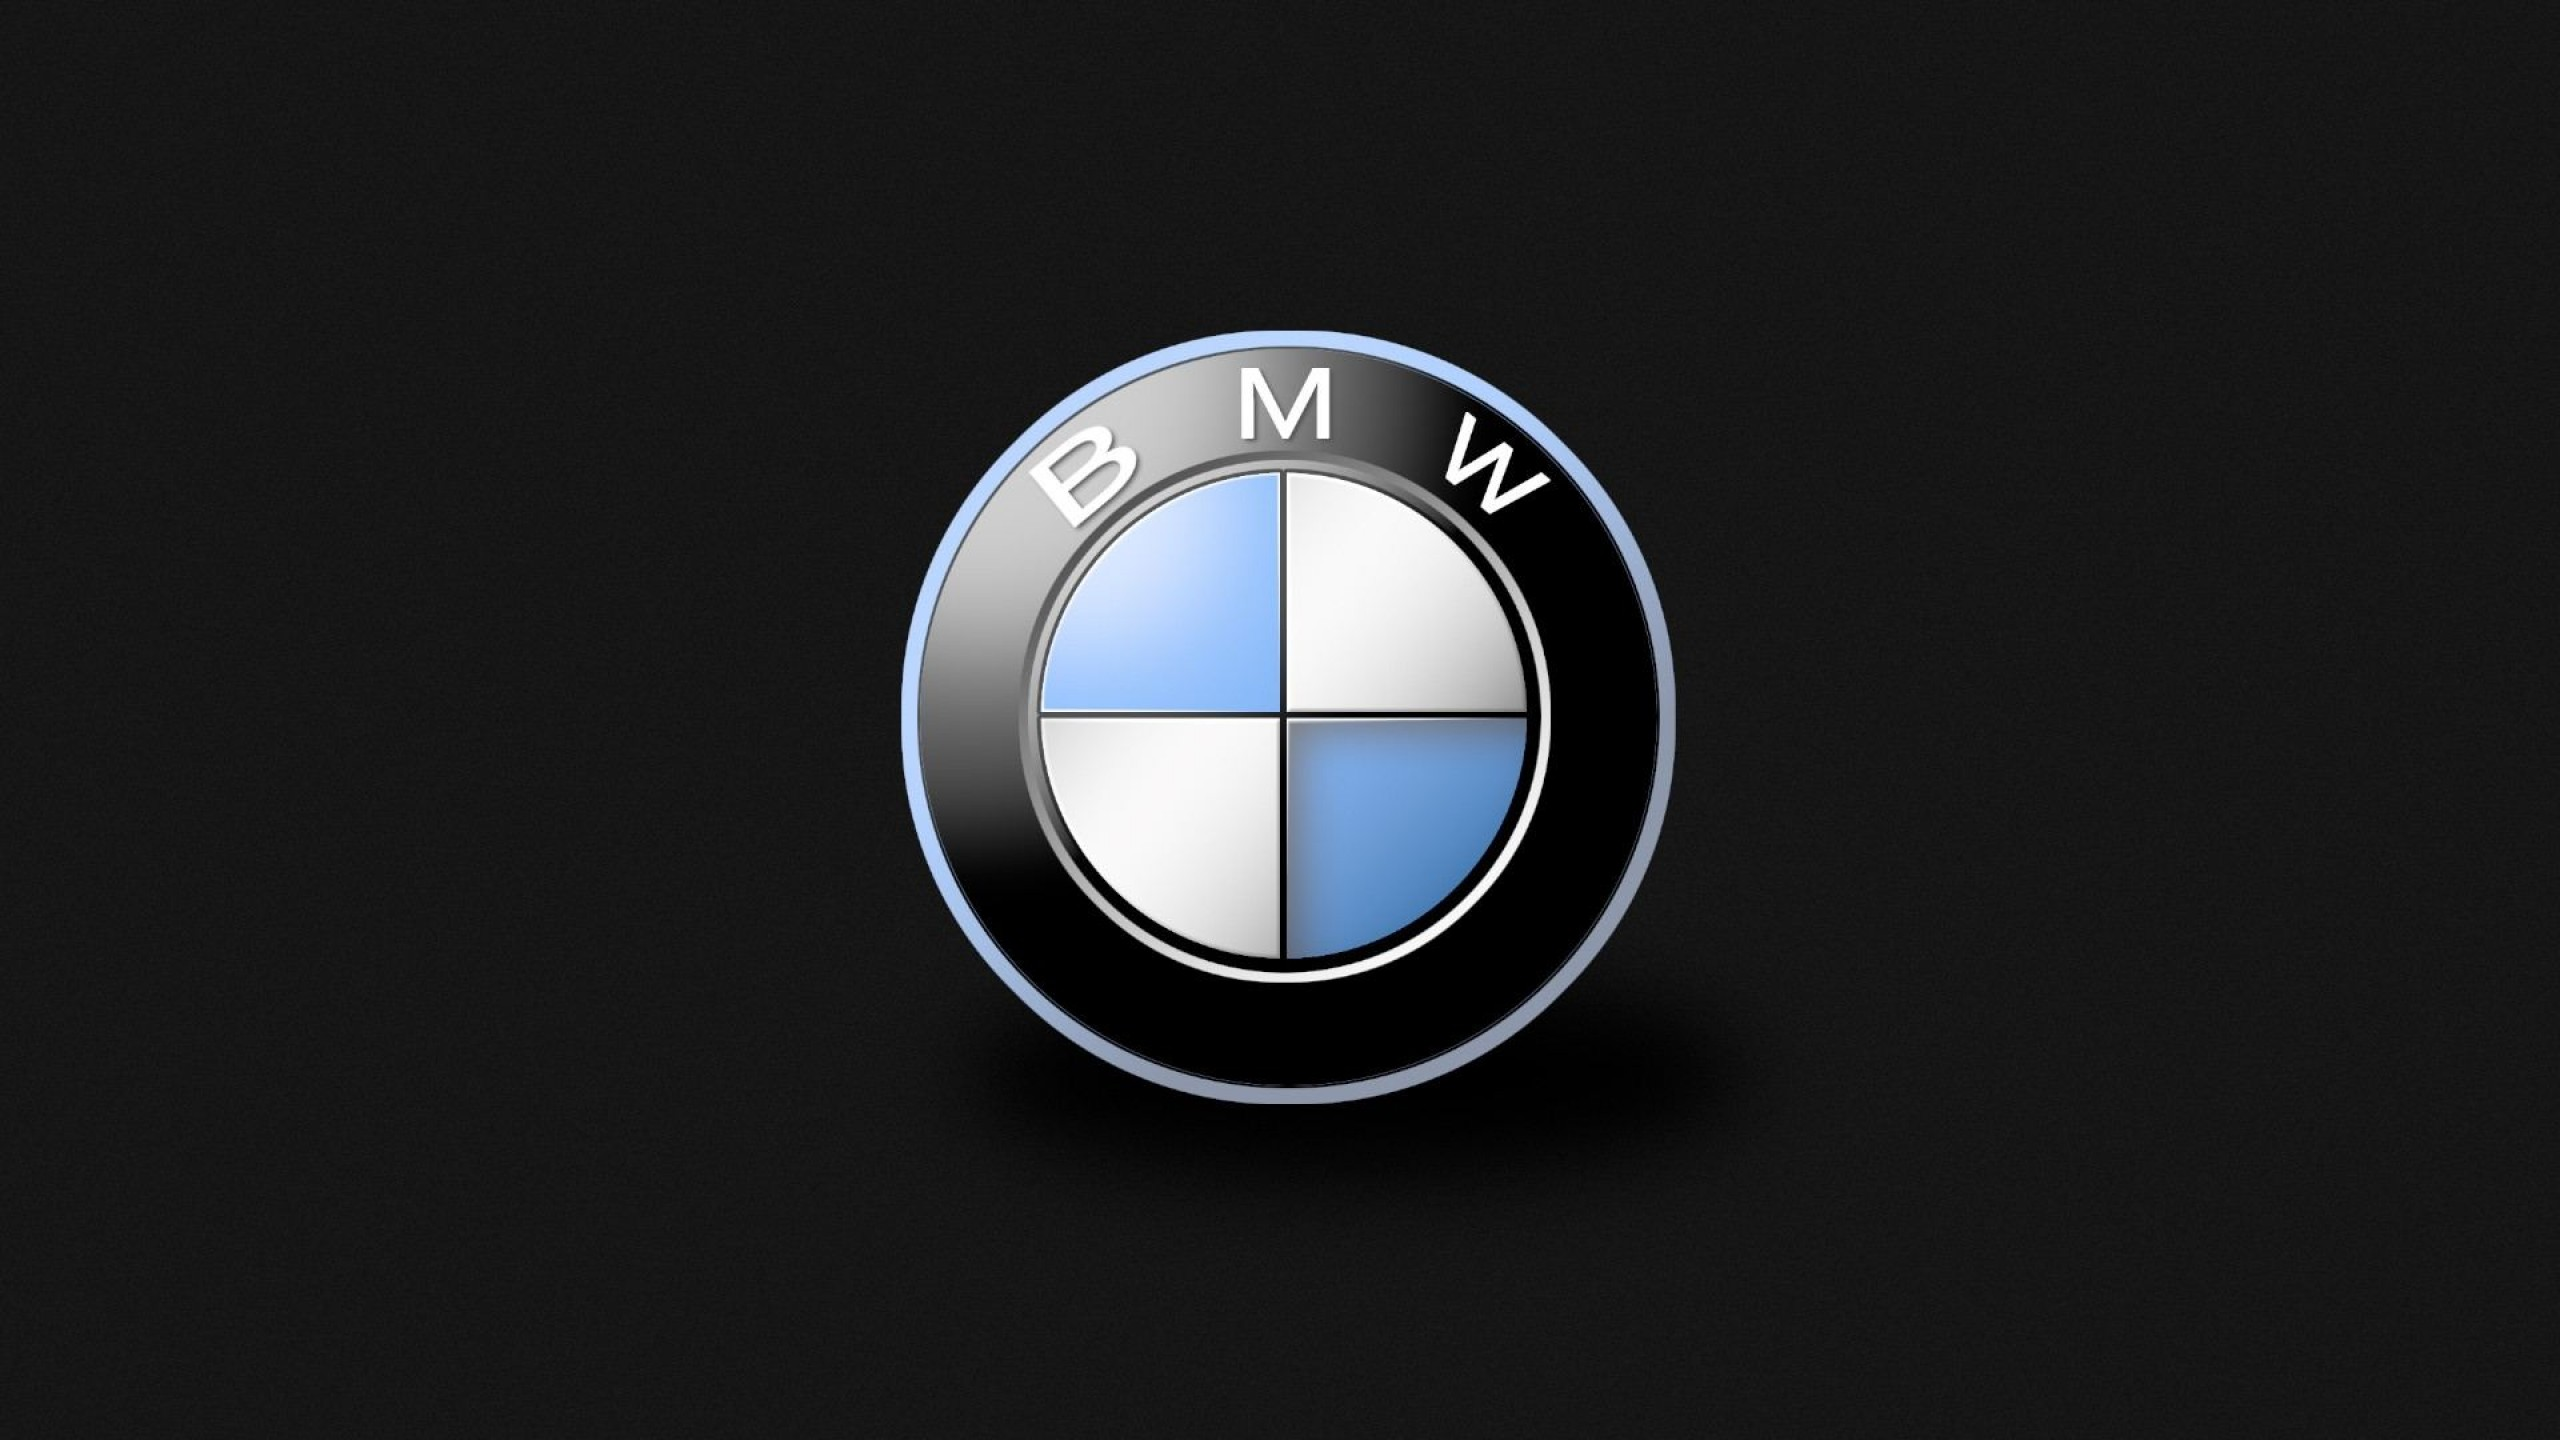 Bmw Logo Background Hd Wallpaper For Desktop And Mobiles Youtube